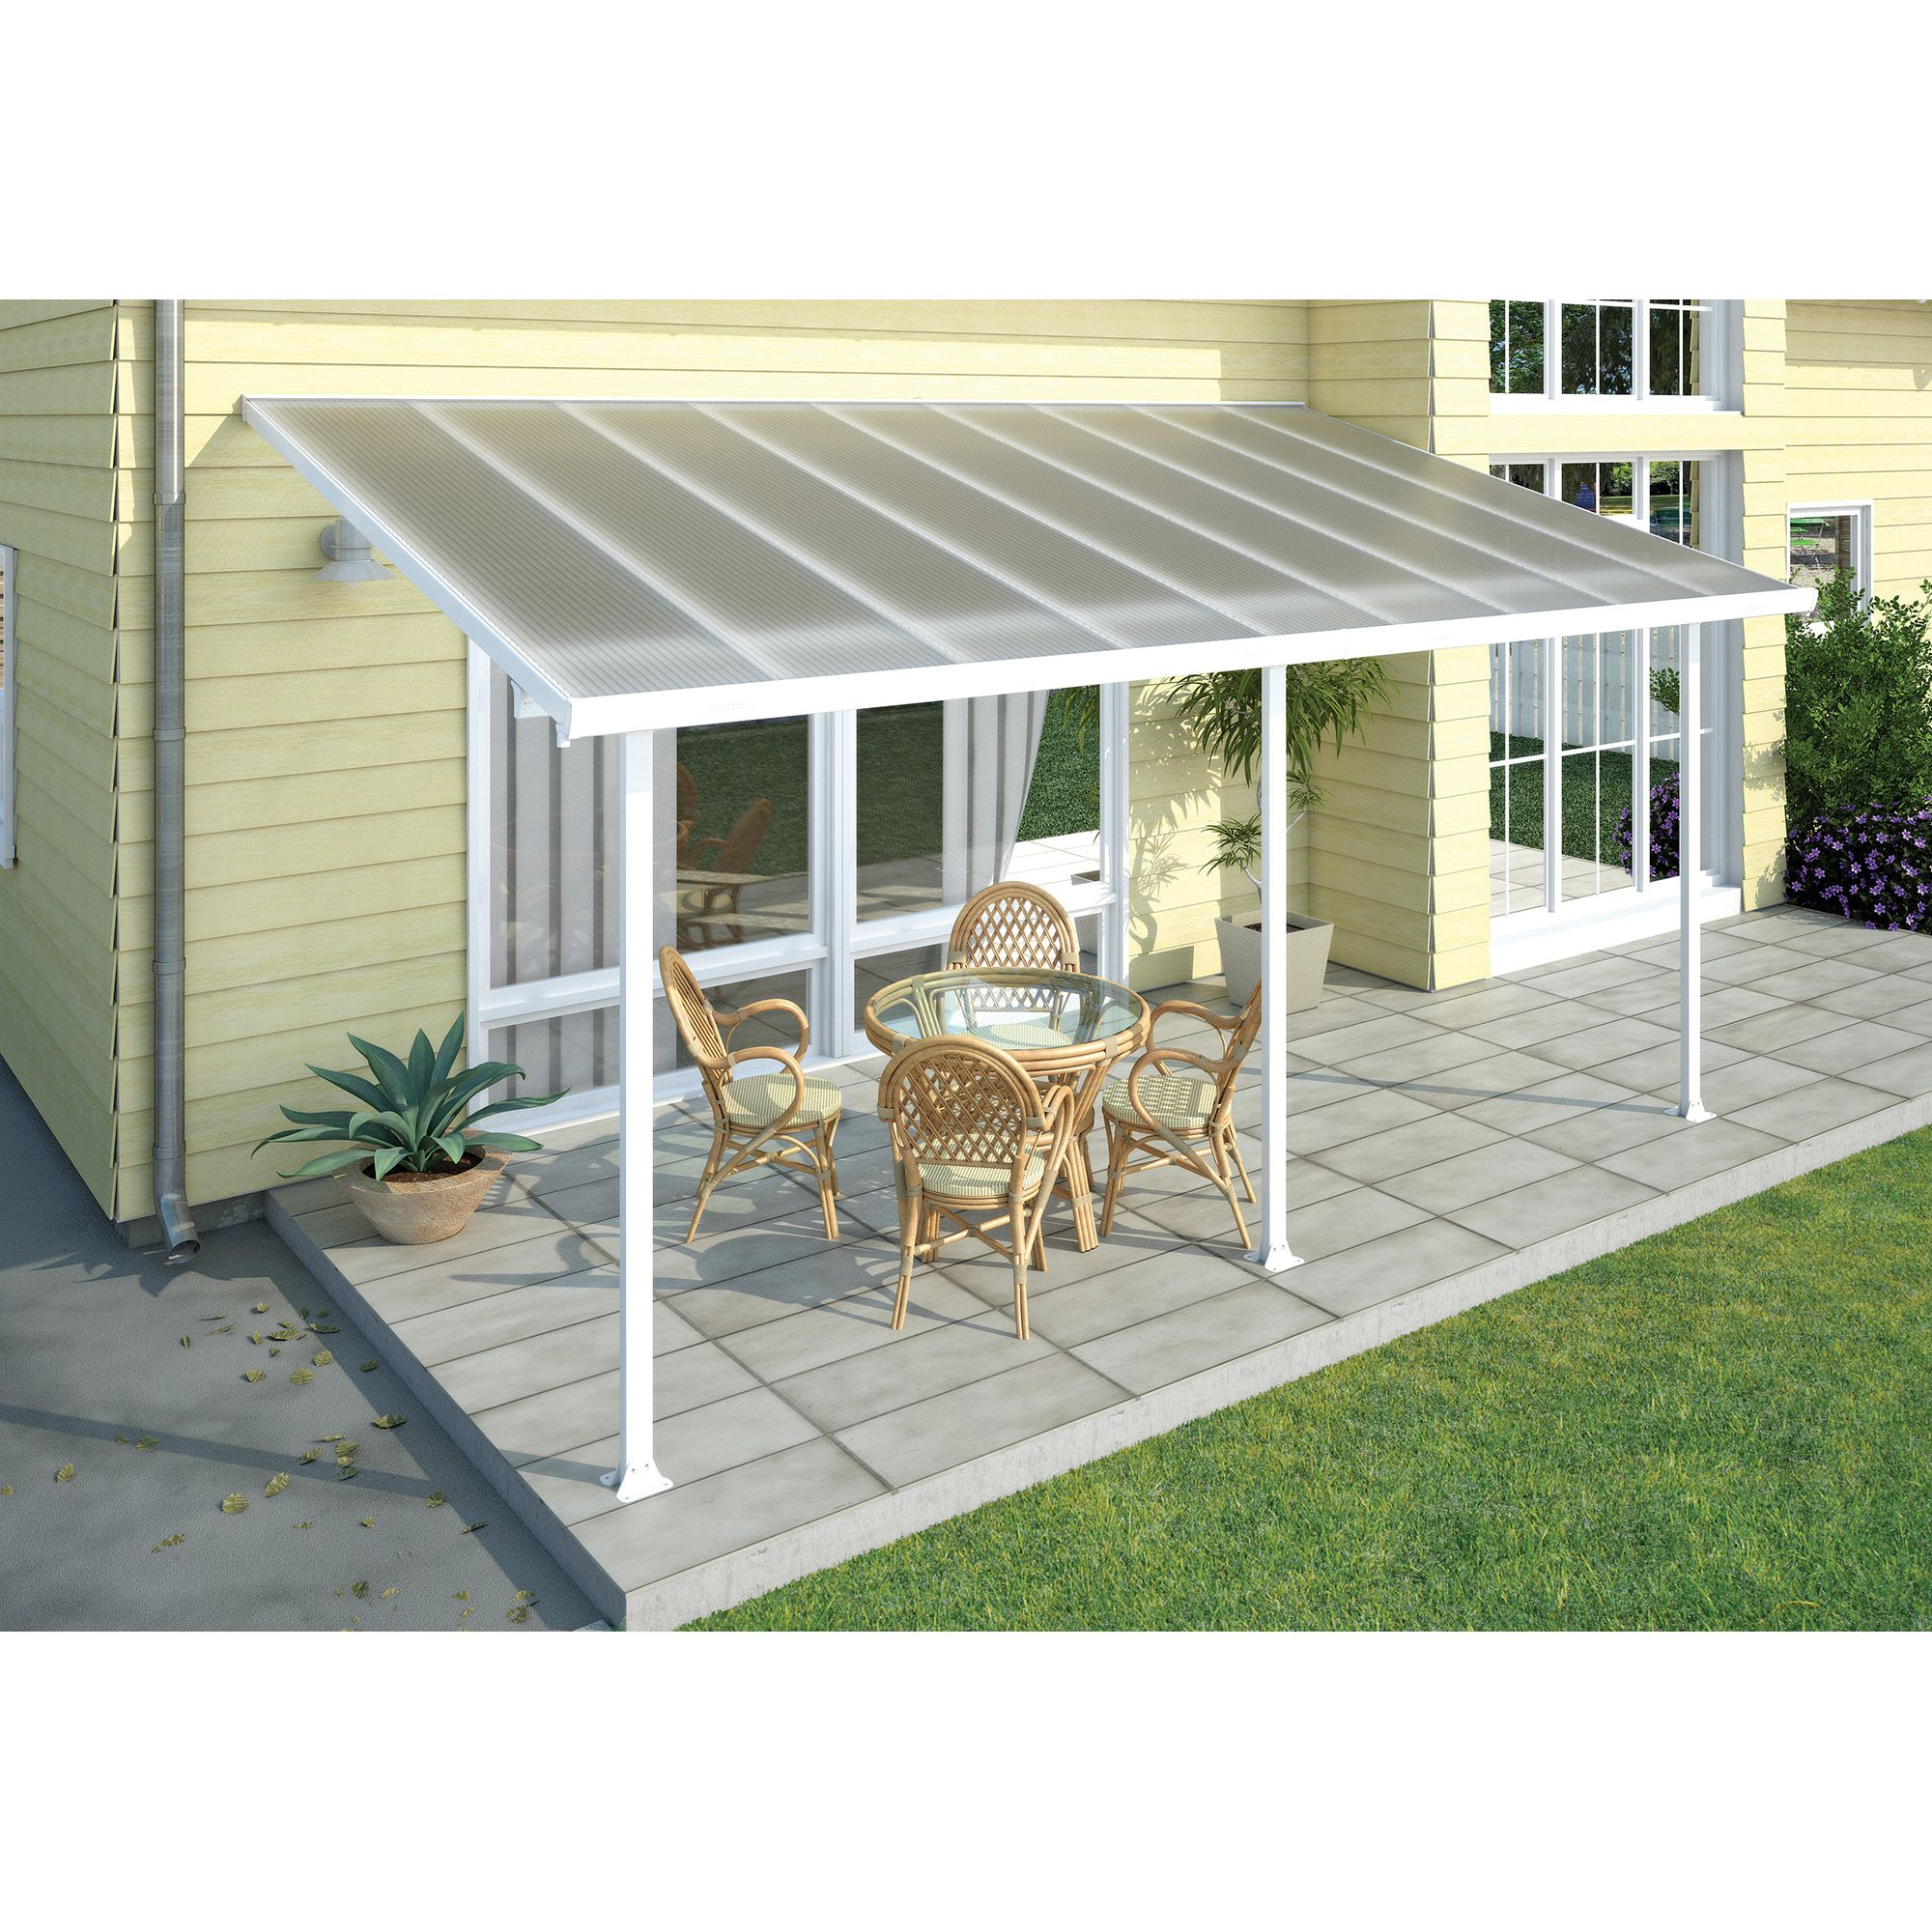 FERIA LEAN TO CARPORT AND PATIO COVER 3X9.71 WHITE at Tesco Direct